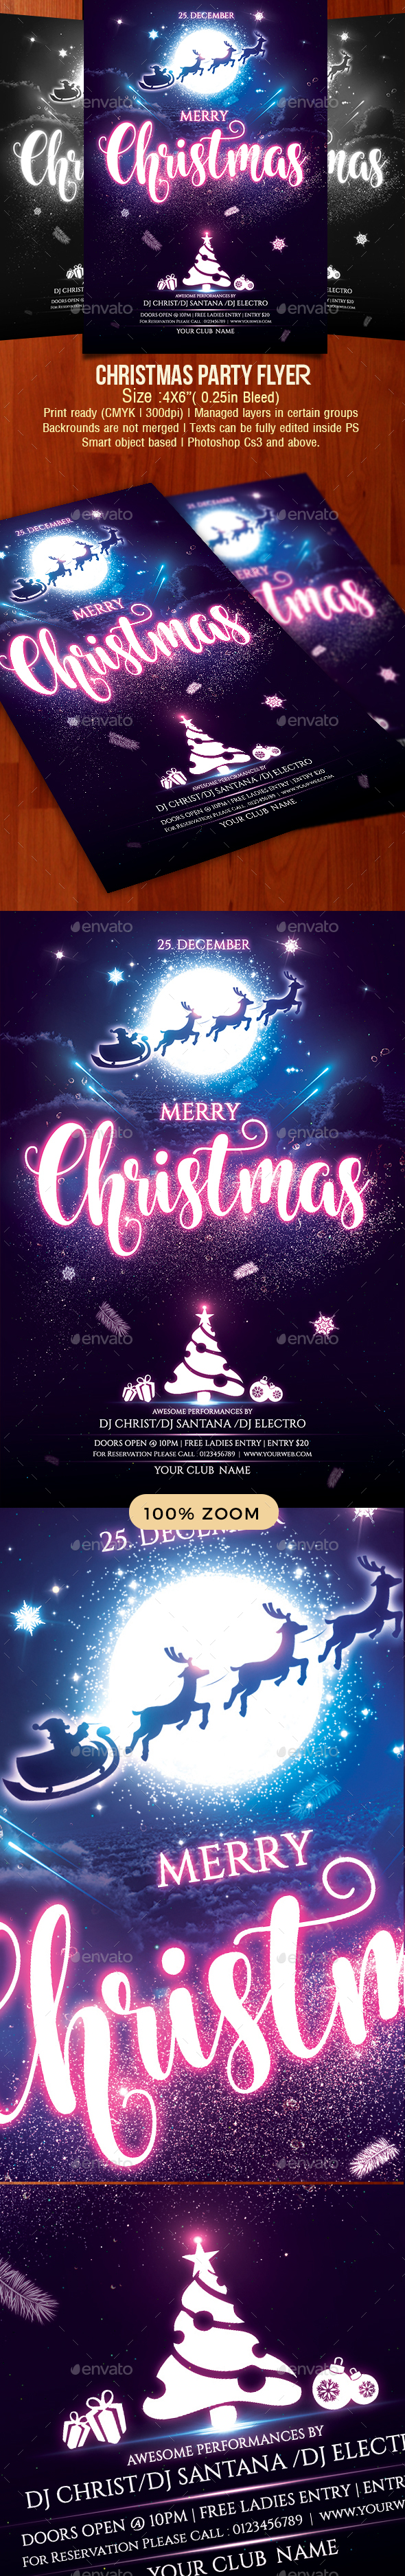 GraphicRiver Christmas Party Flyer 21023856